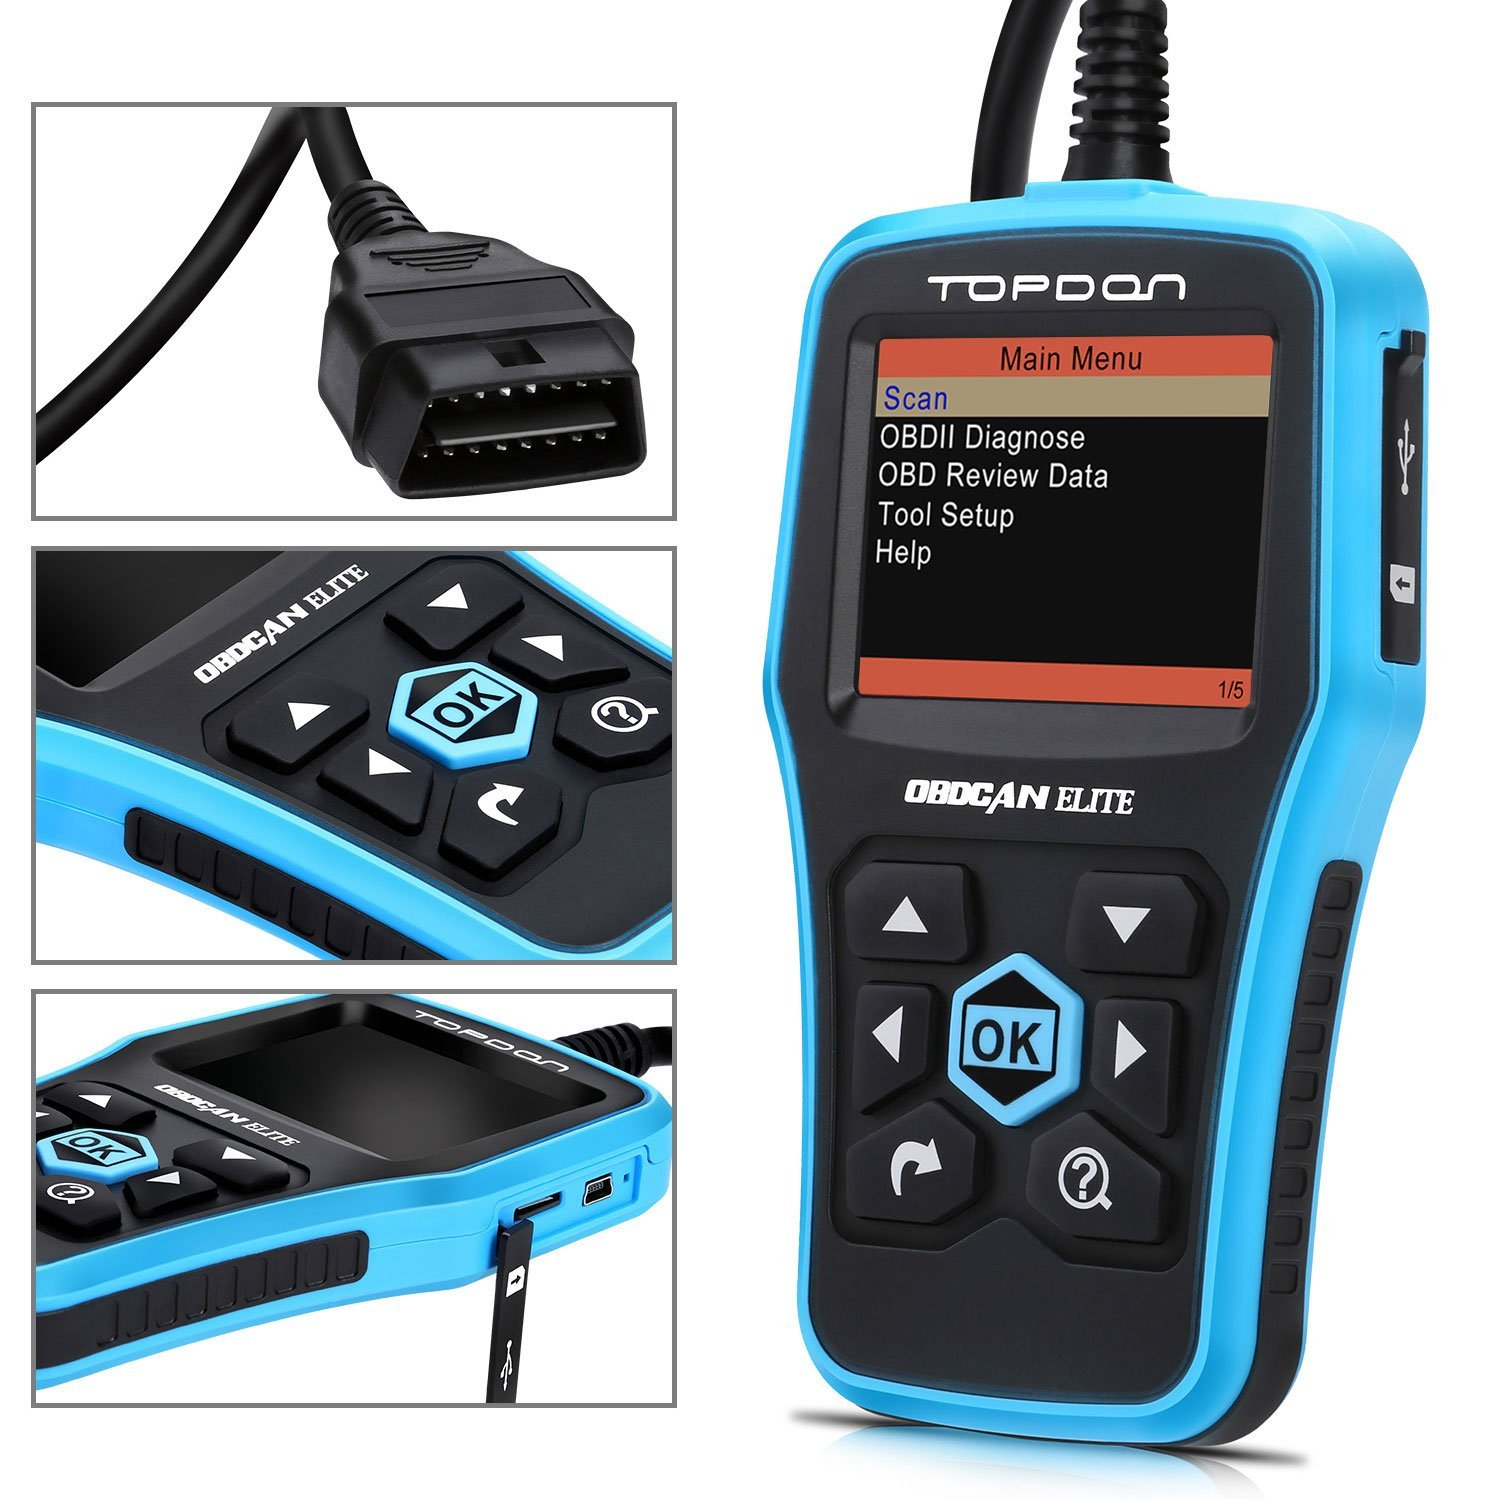 The Topdon Elite ABS/SRS OBD2 Scanner is an amazing tool for DIY car owners.